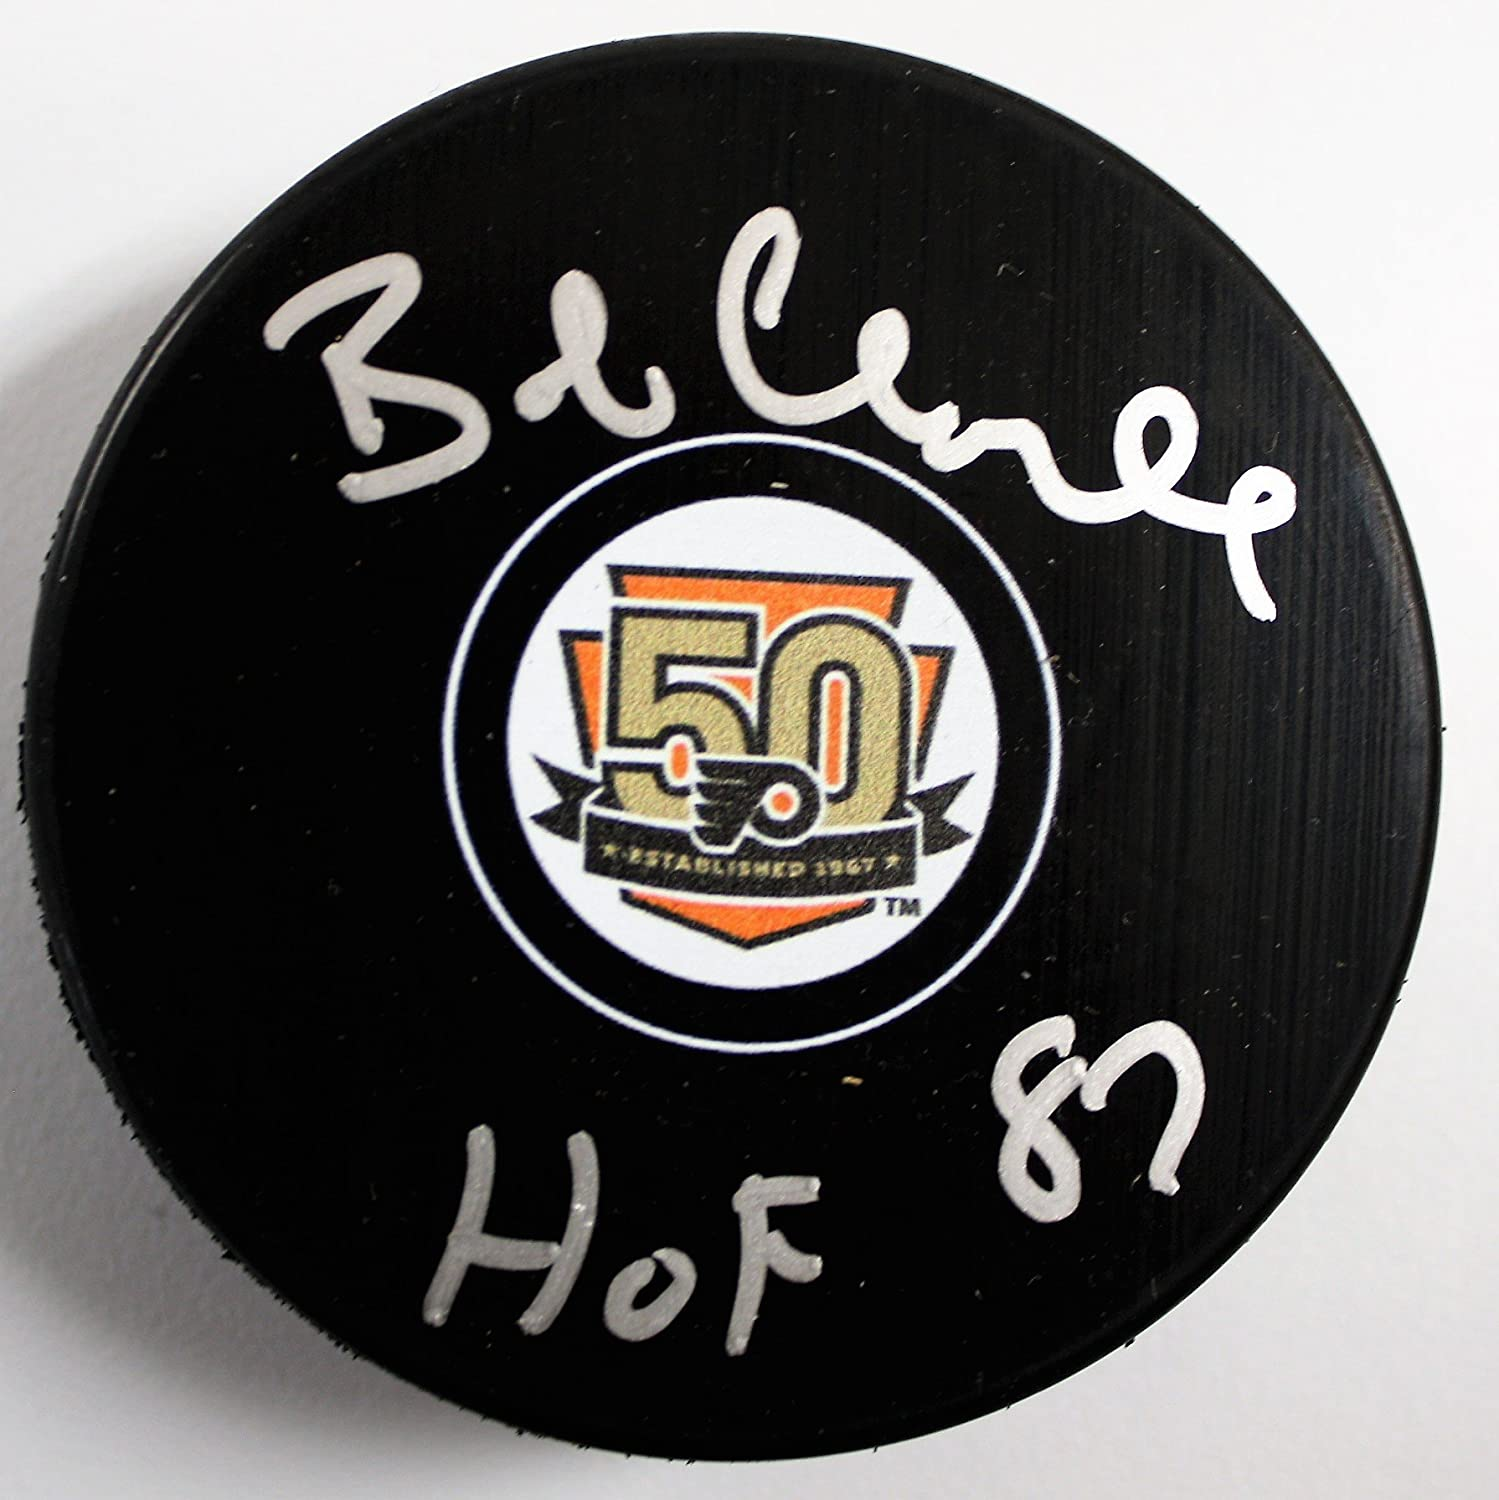 4bf88d9f7 Autographed Bobby Clarke Flyers 50th Anniversary Hockey Puck with HoF 1987  with COA at Amazons Sports NHL Philadelphia ...